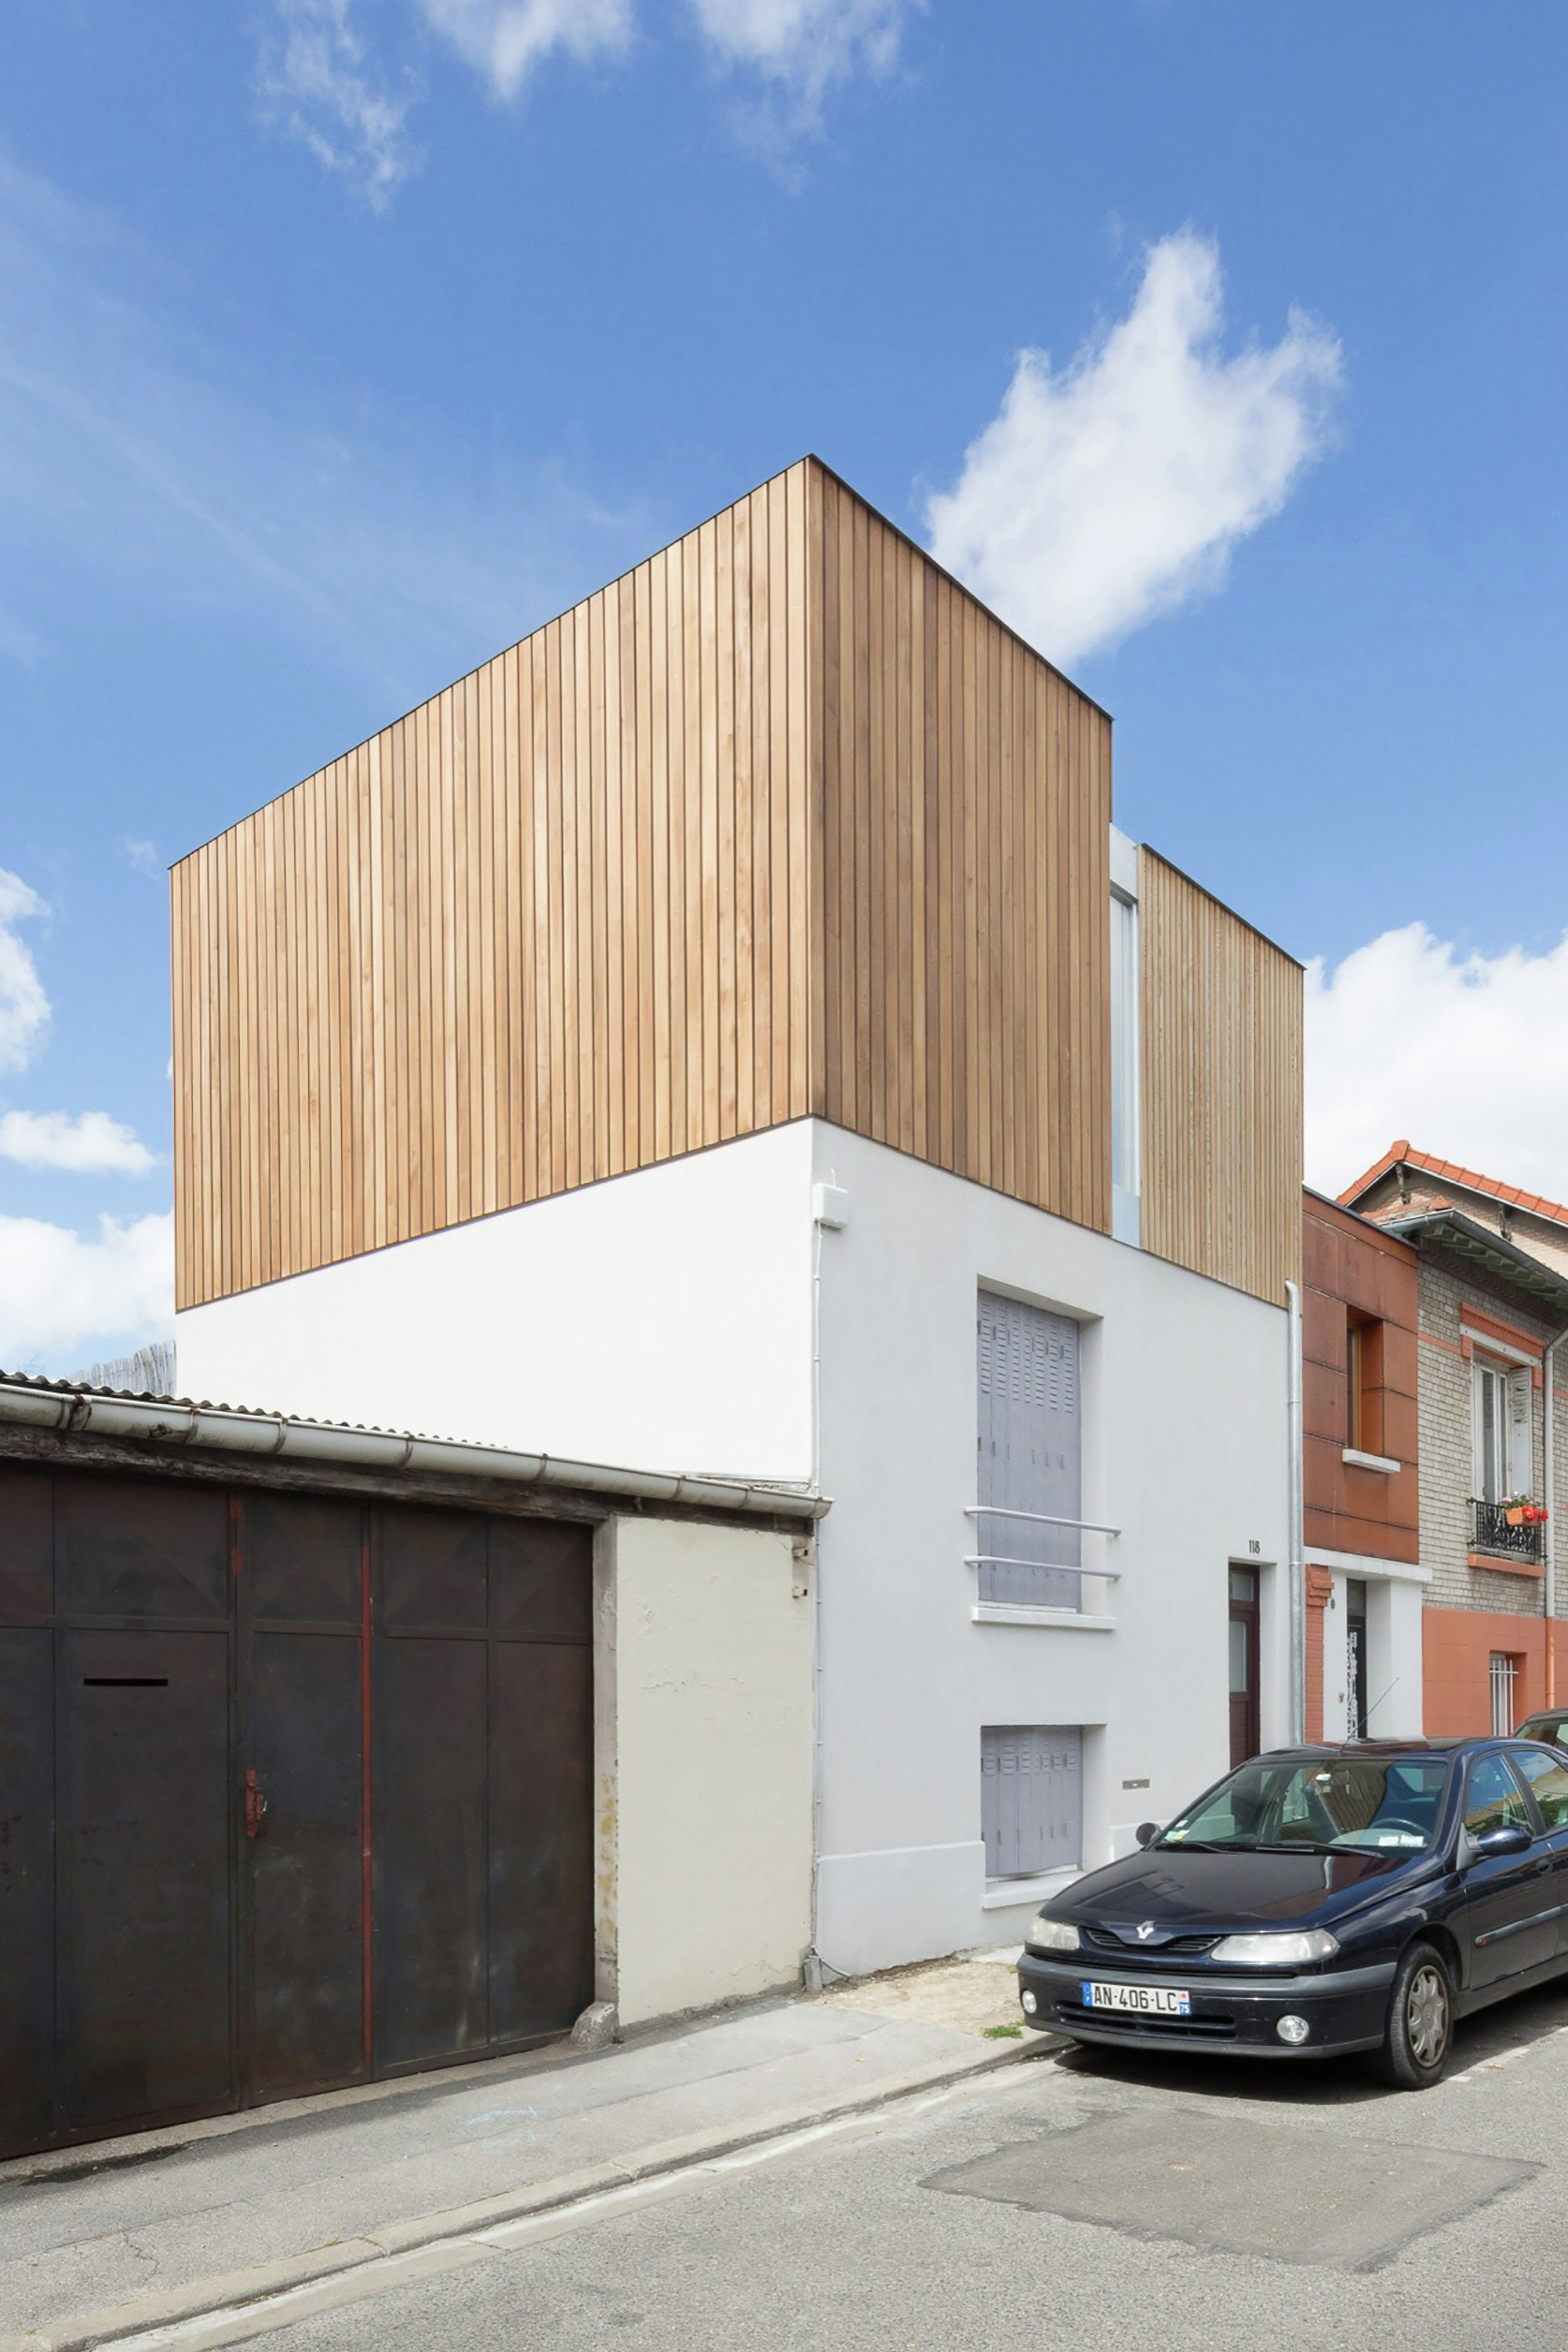 Urban beat a small 80 square meter home renovation in france for Home renovation